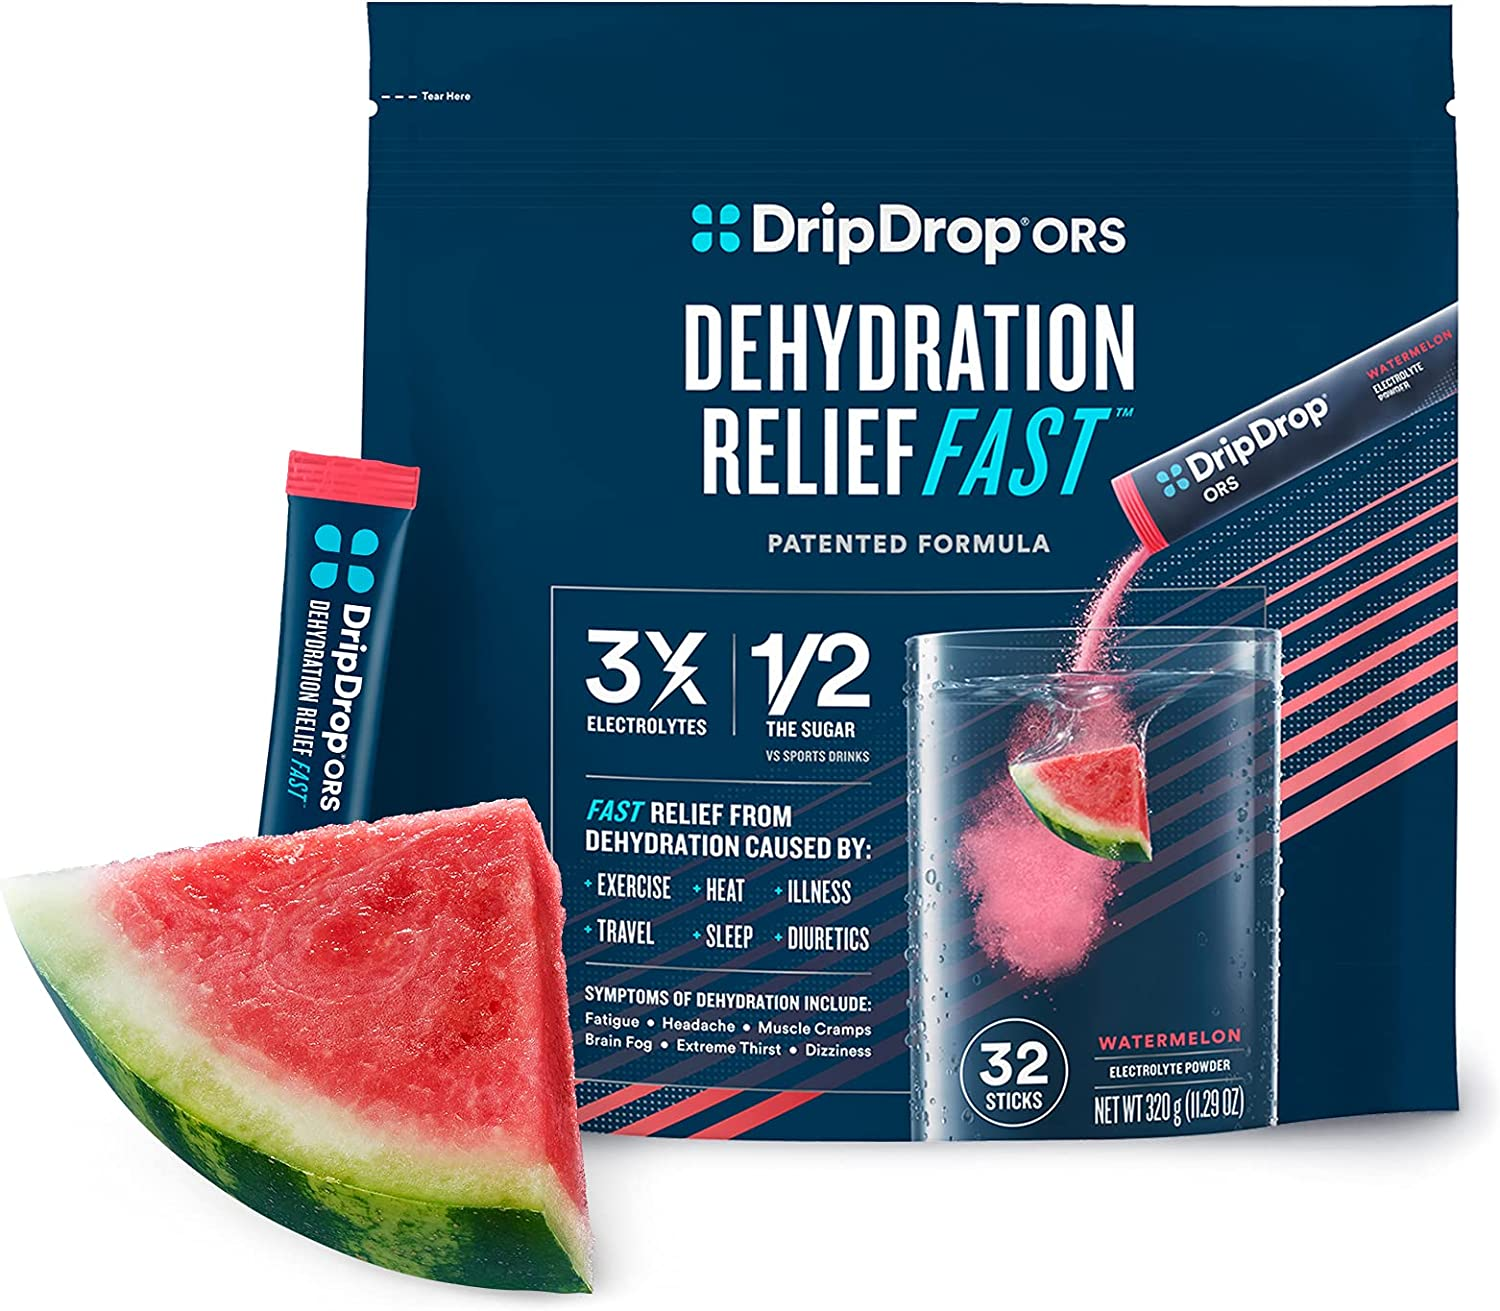 DripDrop ORS - Patented Electrolyte Powder For Dehydration Relief Fast - For Workout, Sweating, Illness, & Travel Recovery - Watermelon - 32 x 8oz Servings